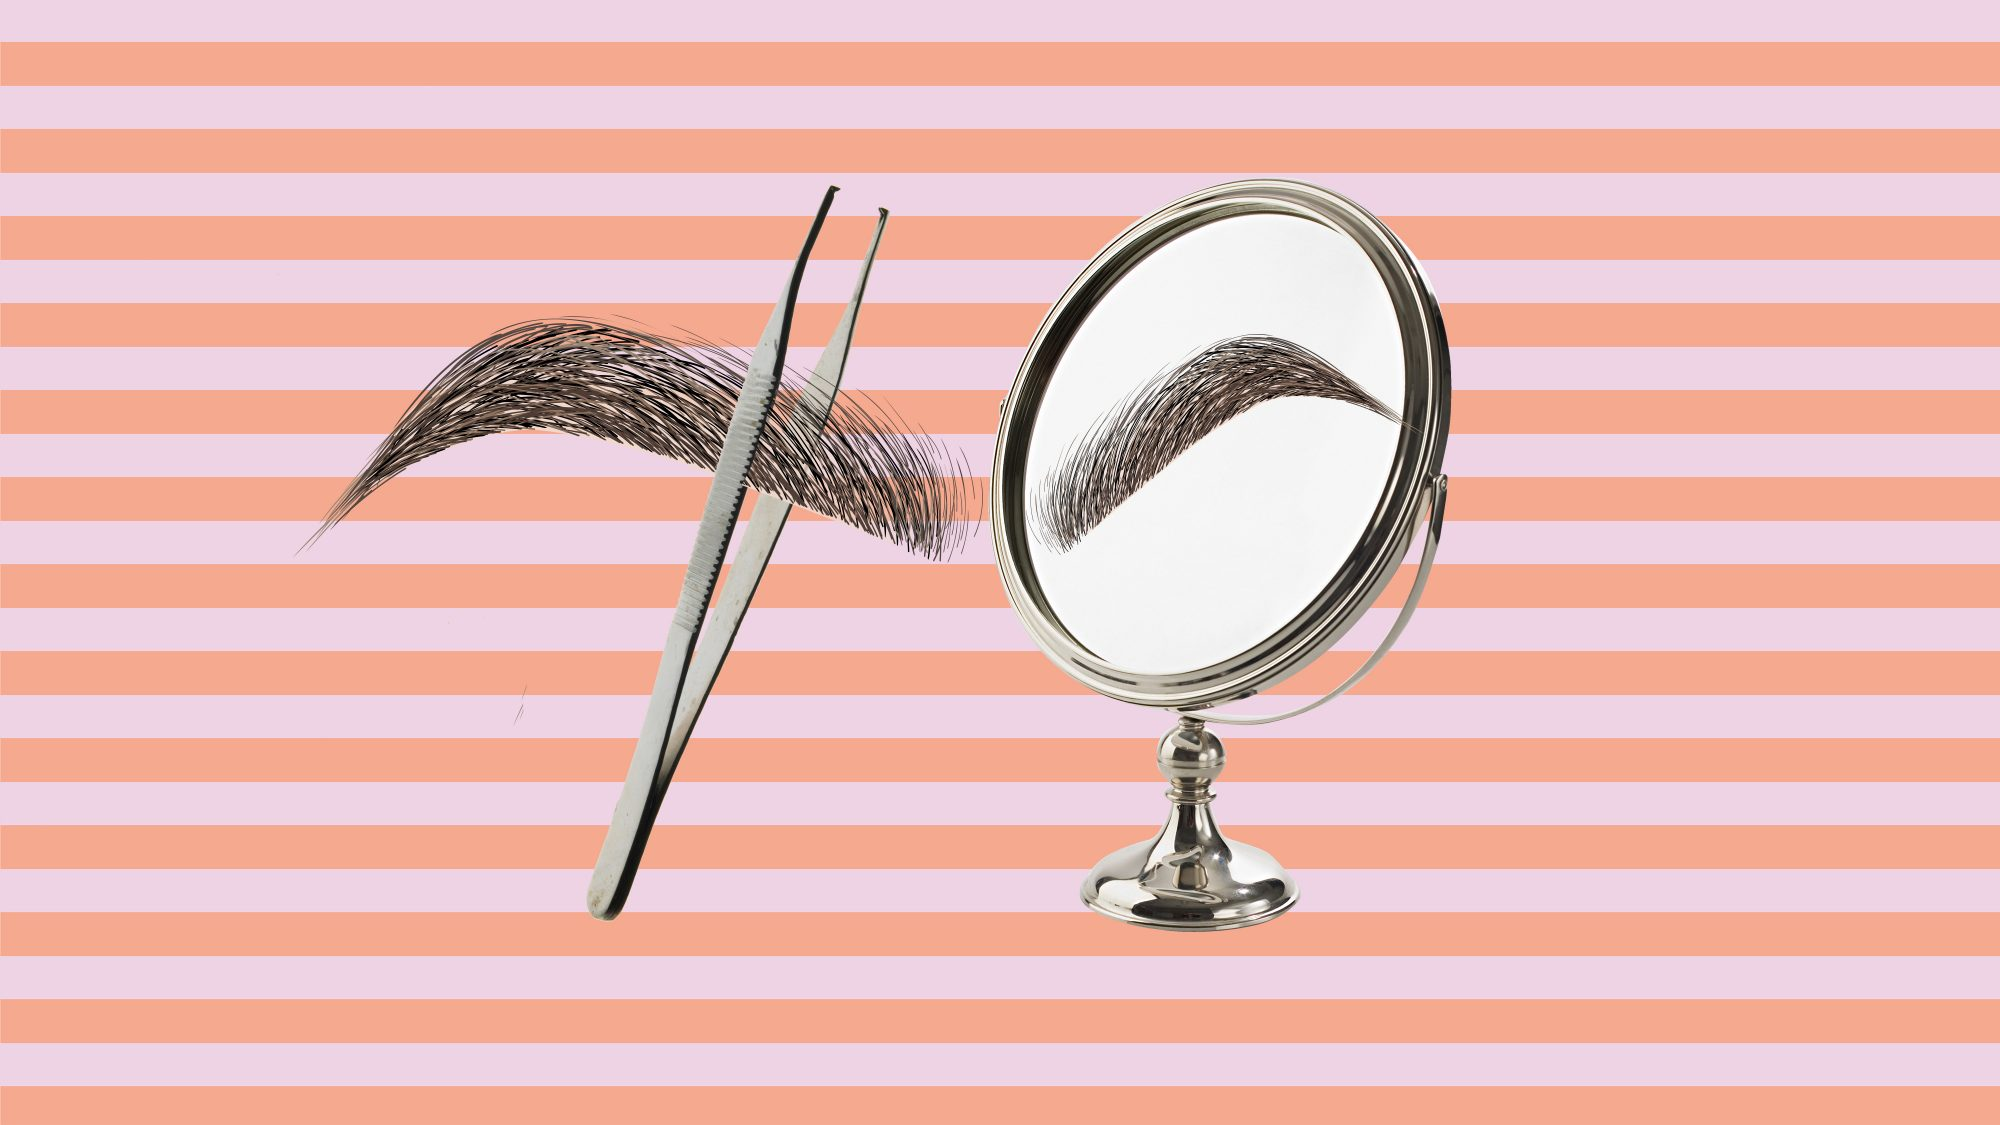 How to Fix 8 Common Beauty Mistakes: Tweezing Your Eyebrows Too Close to a Mirror